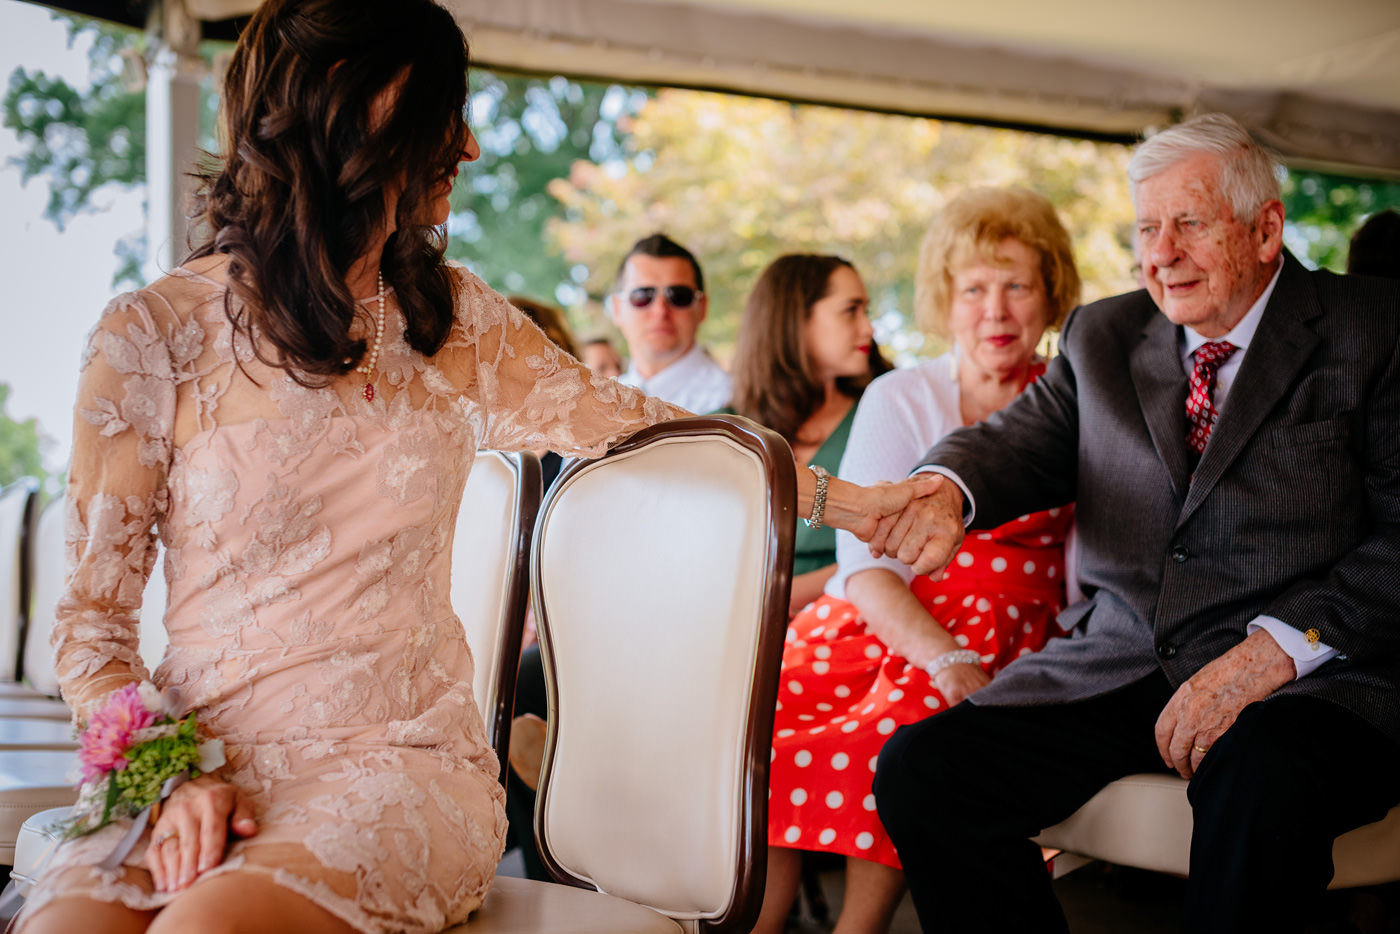 tender family moment during wedding ceremony